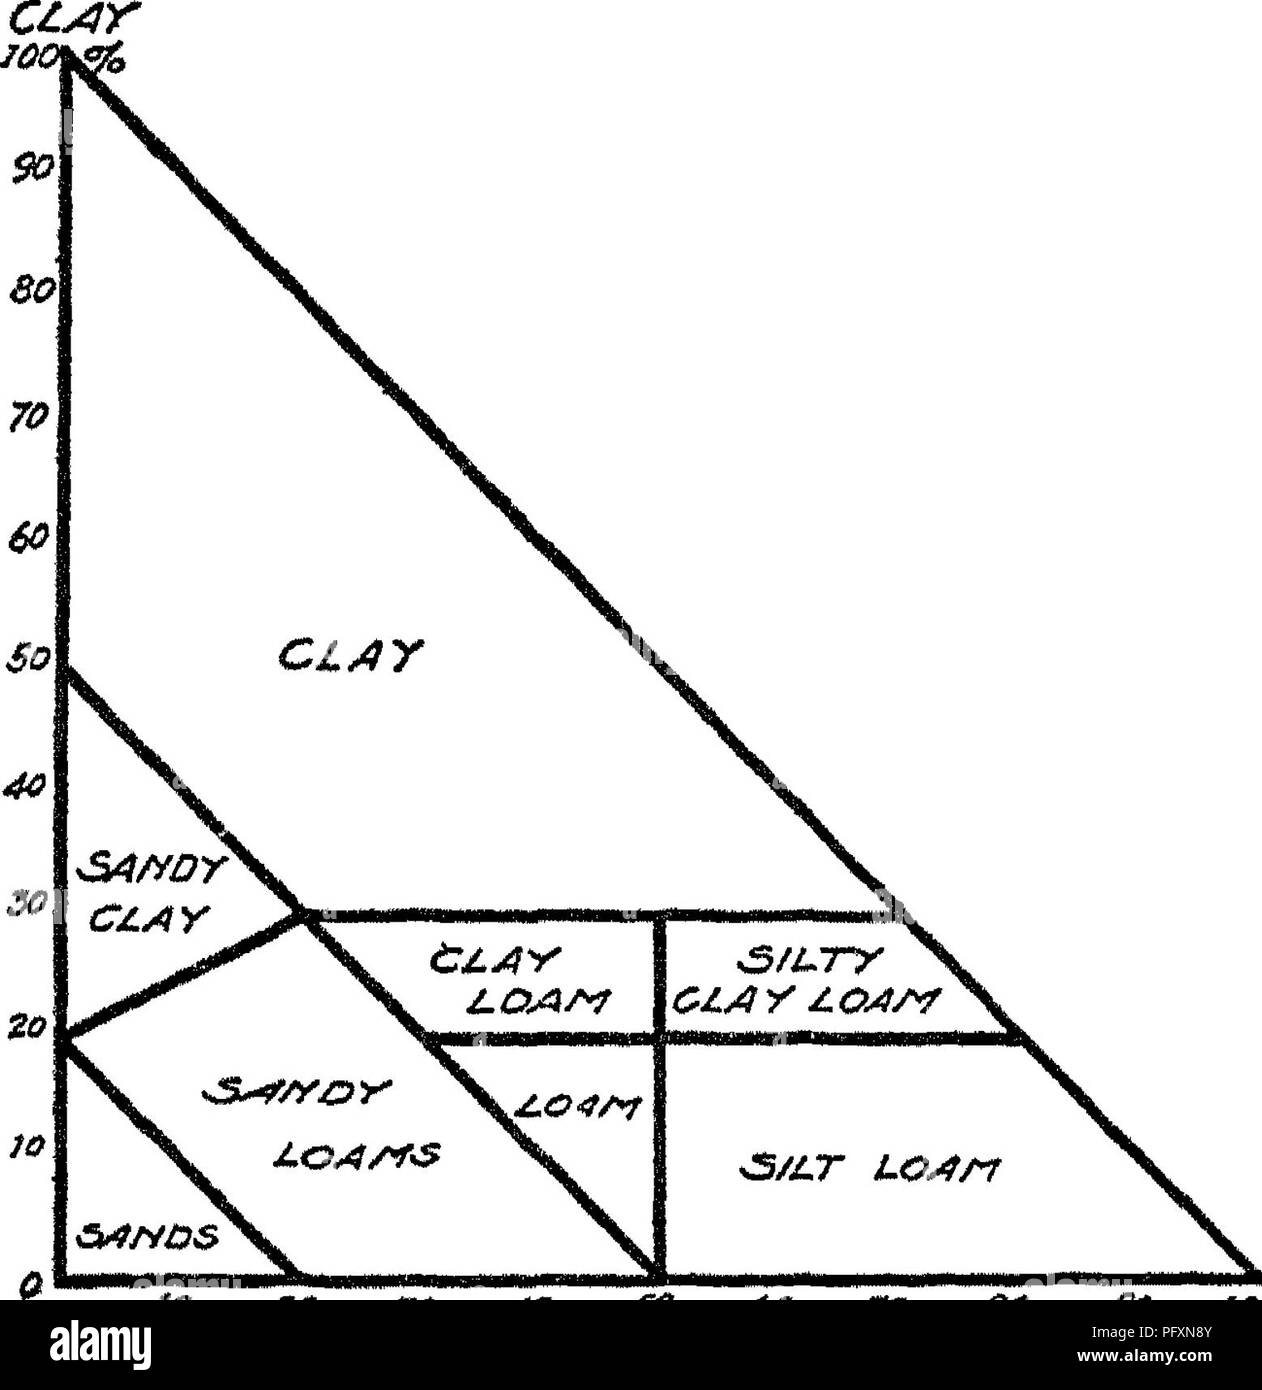 Soils their properties and management soils 106 soils fbofebties soils 106 soils fbofebties and management jlt jo zo jo jic o 60 70 80 fo woyo fig 16 diagram for the determination of soil class ccuart Choice Image